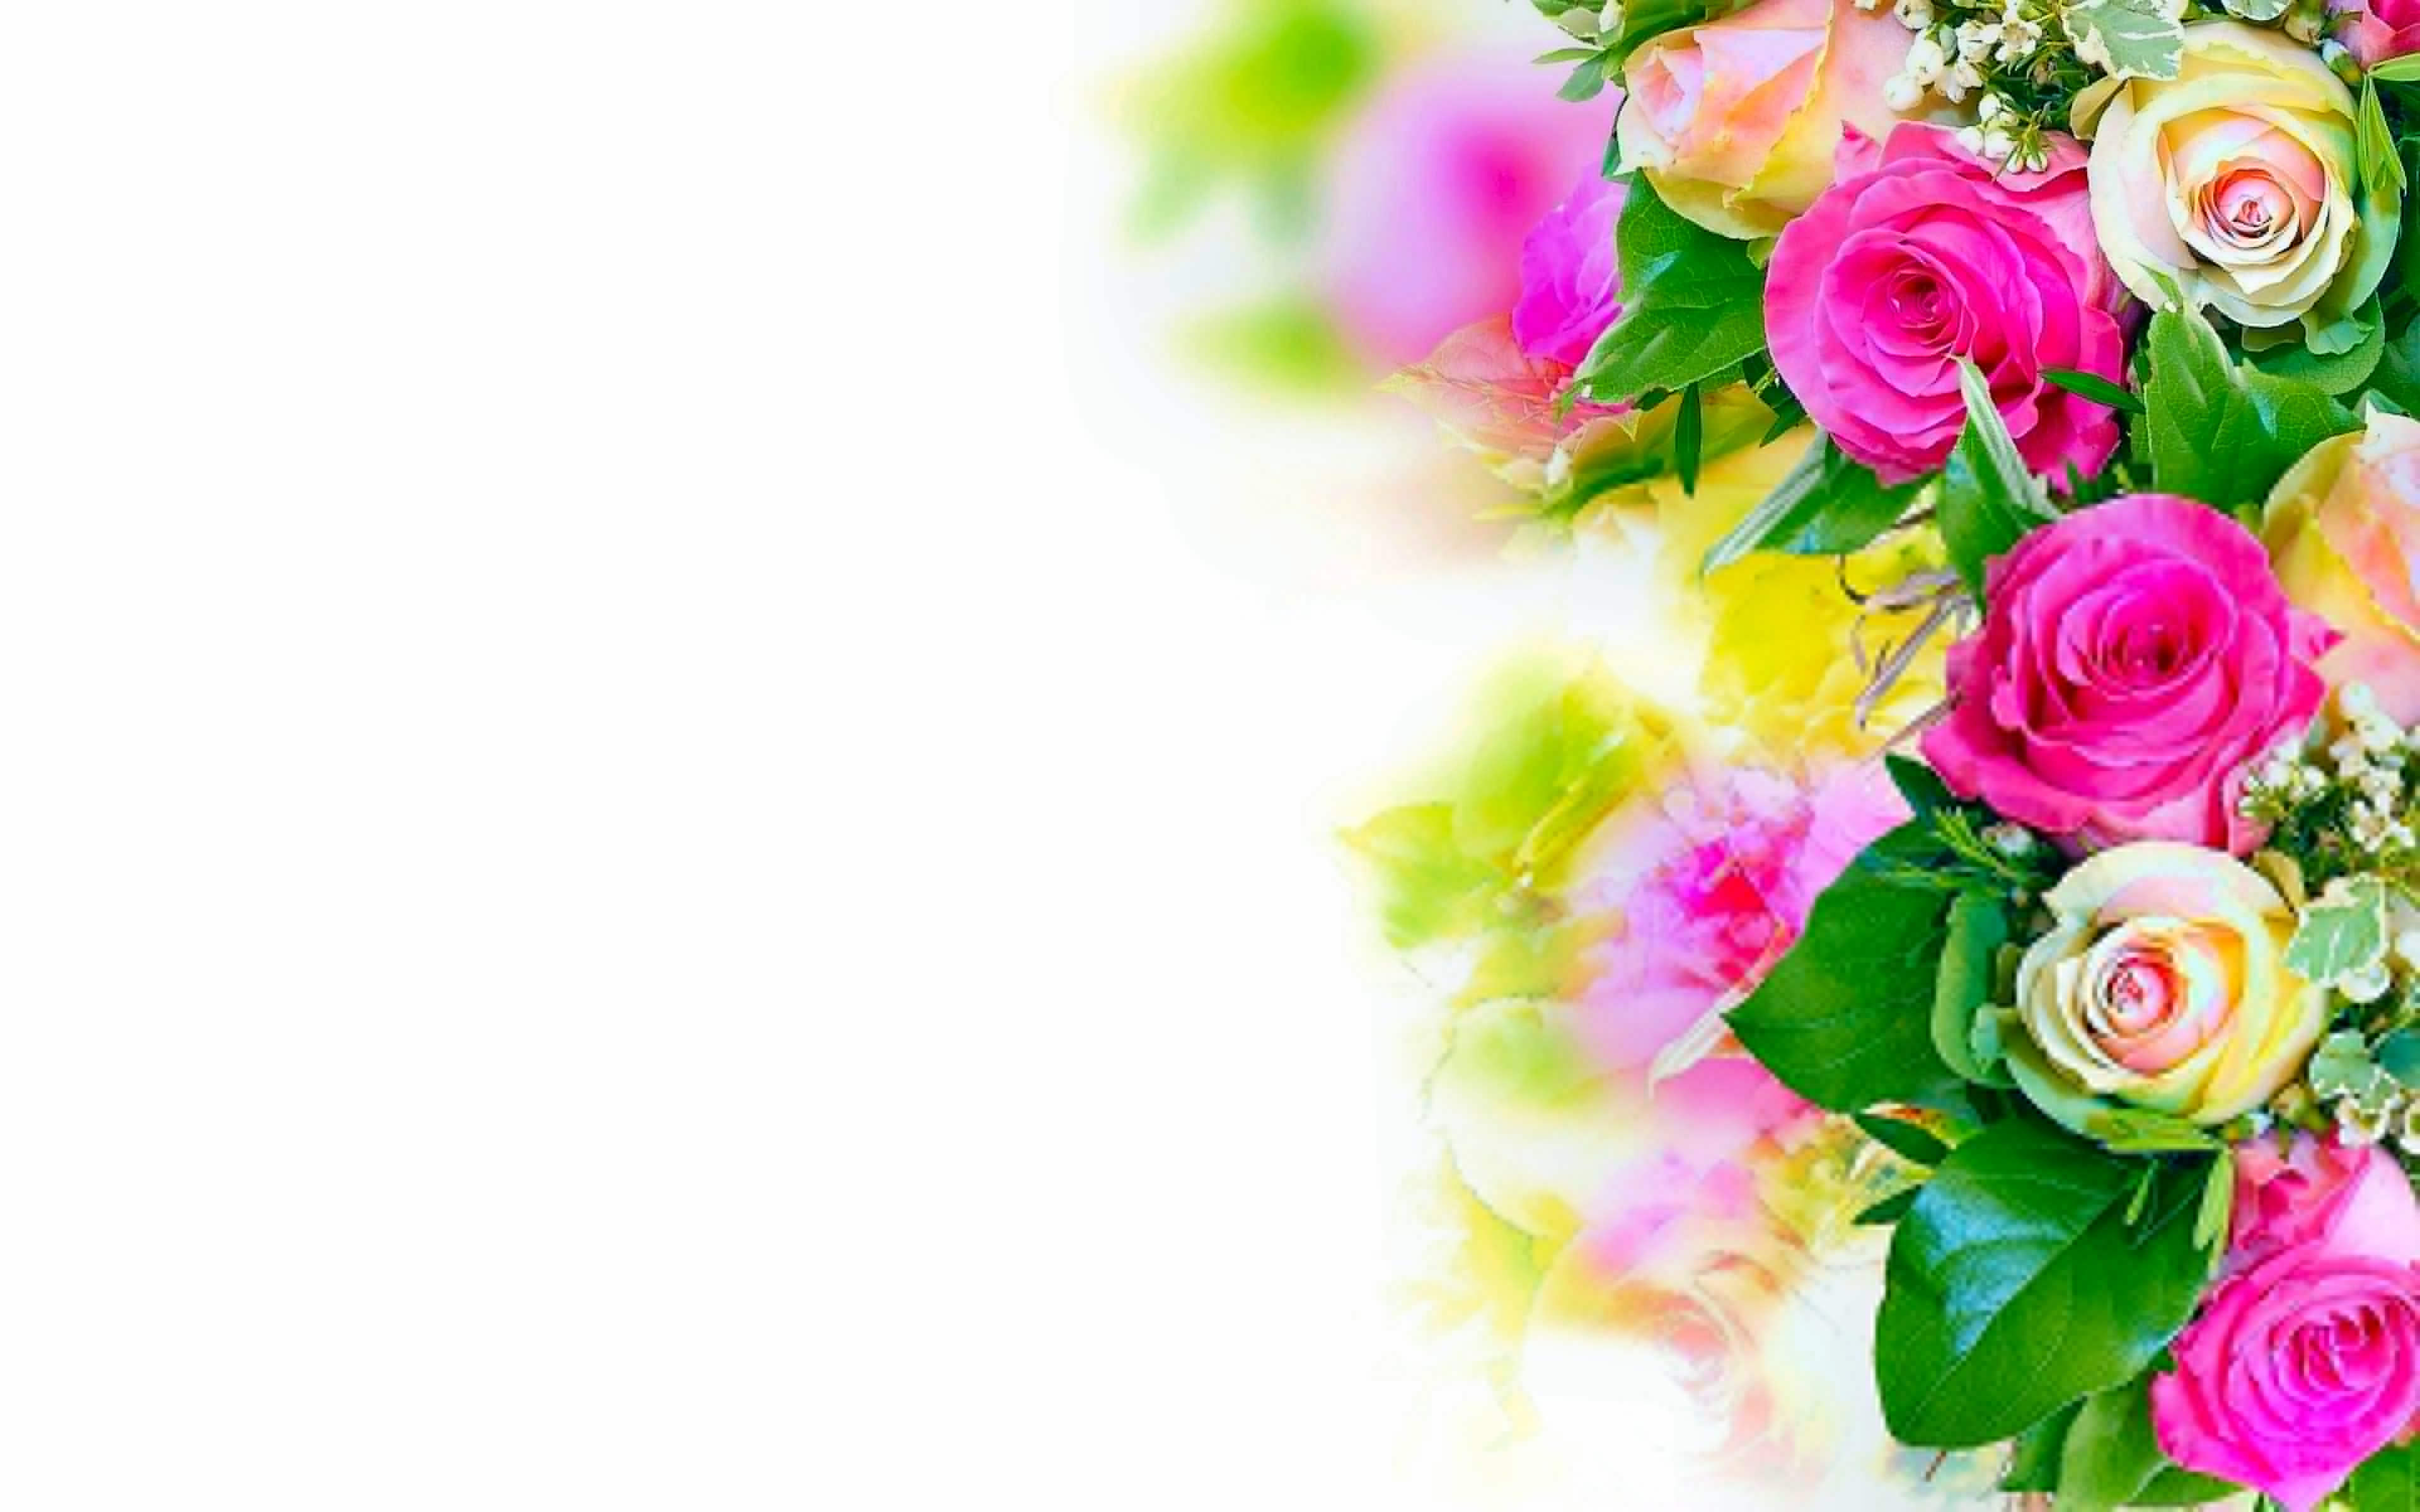 25 Roses Background Wallpapers Images Pictures 3840x2400